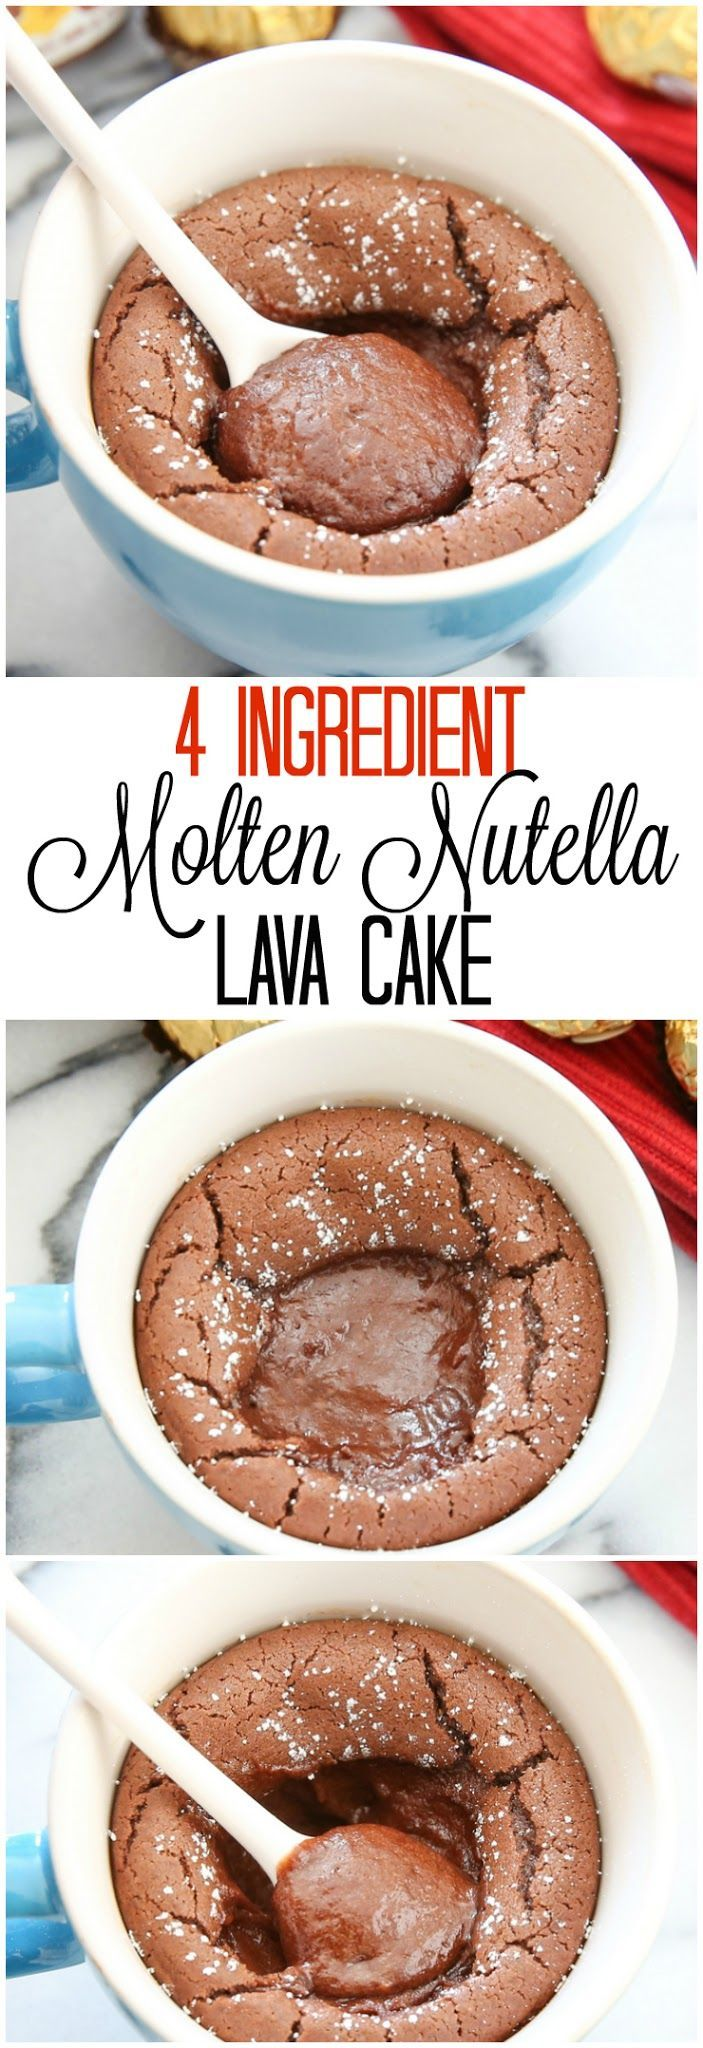 This single serving molten Nutella lava mug cake couldn't be easier. The recipe is just four ingredients and is eggless. Hopefully you will love me and not hate me for this one. I love molten chocolate cakes. For me, my ideal lava cake has a very light, delicate cake shell, with a hot, molten, liquid center. …